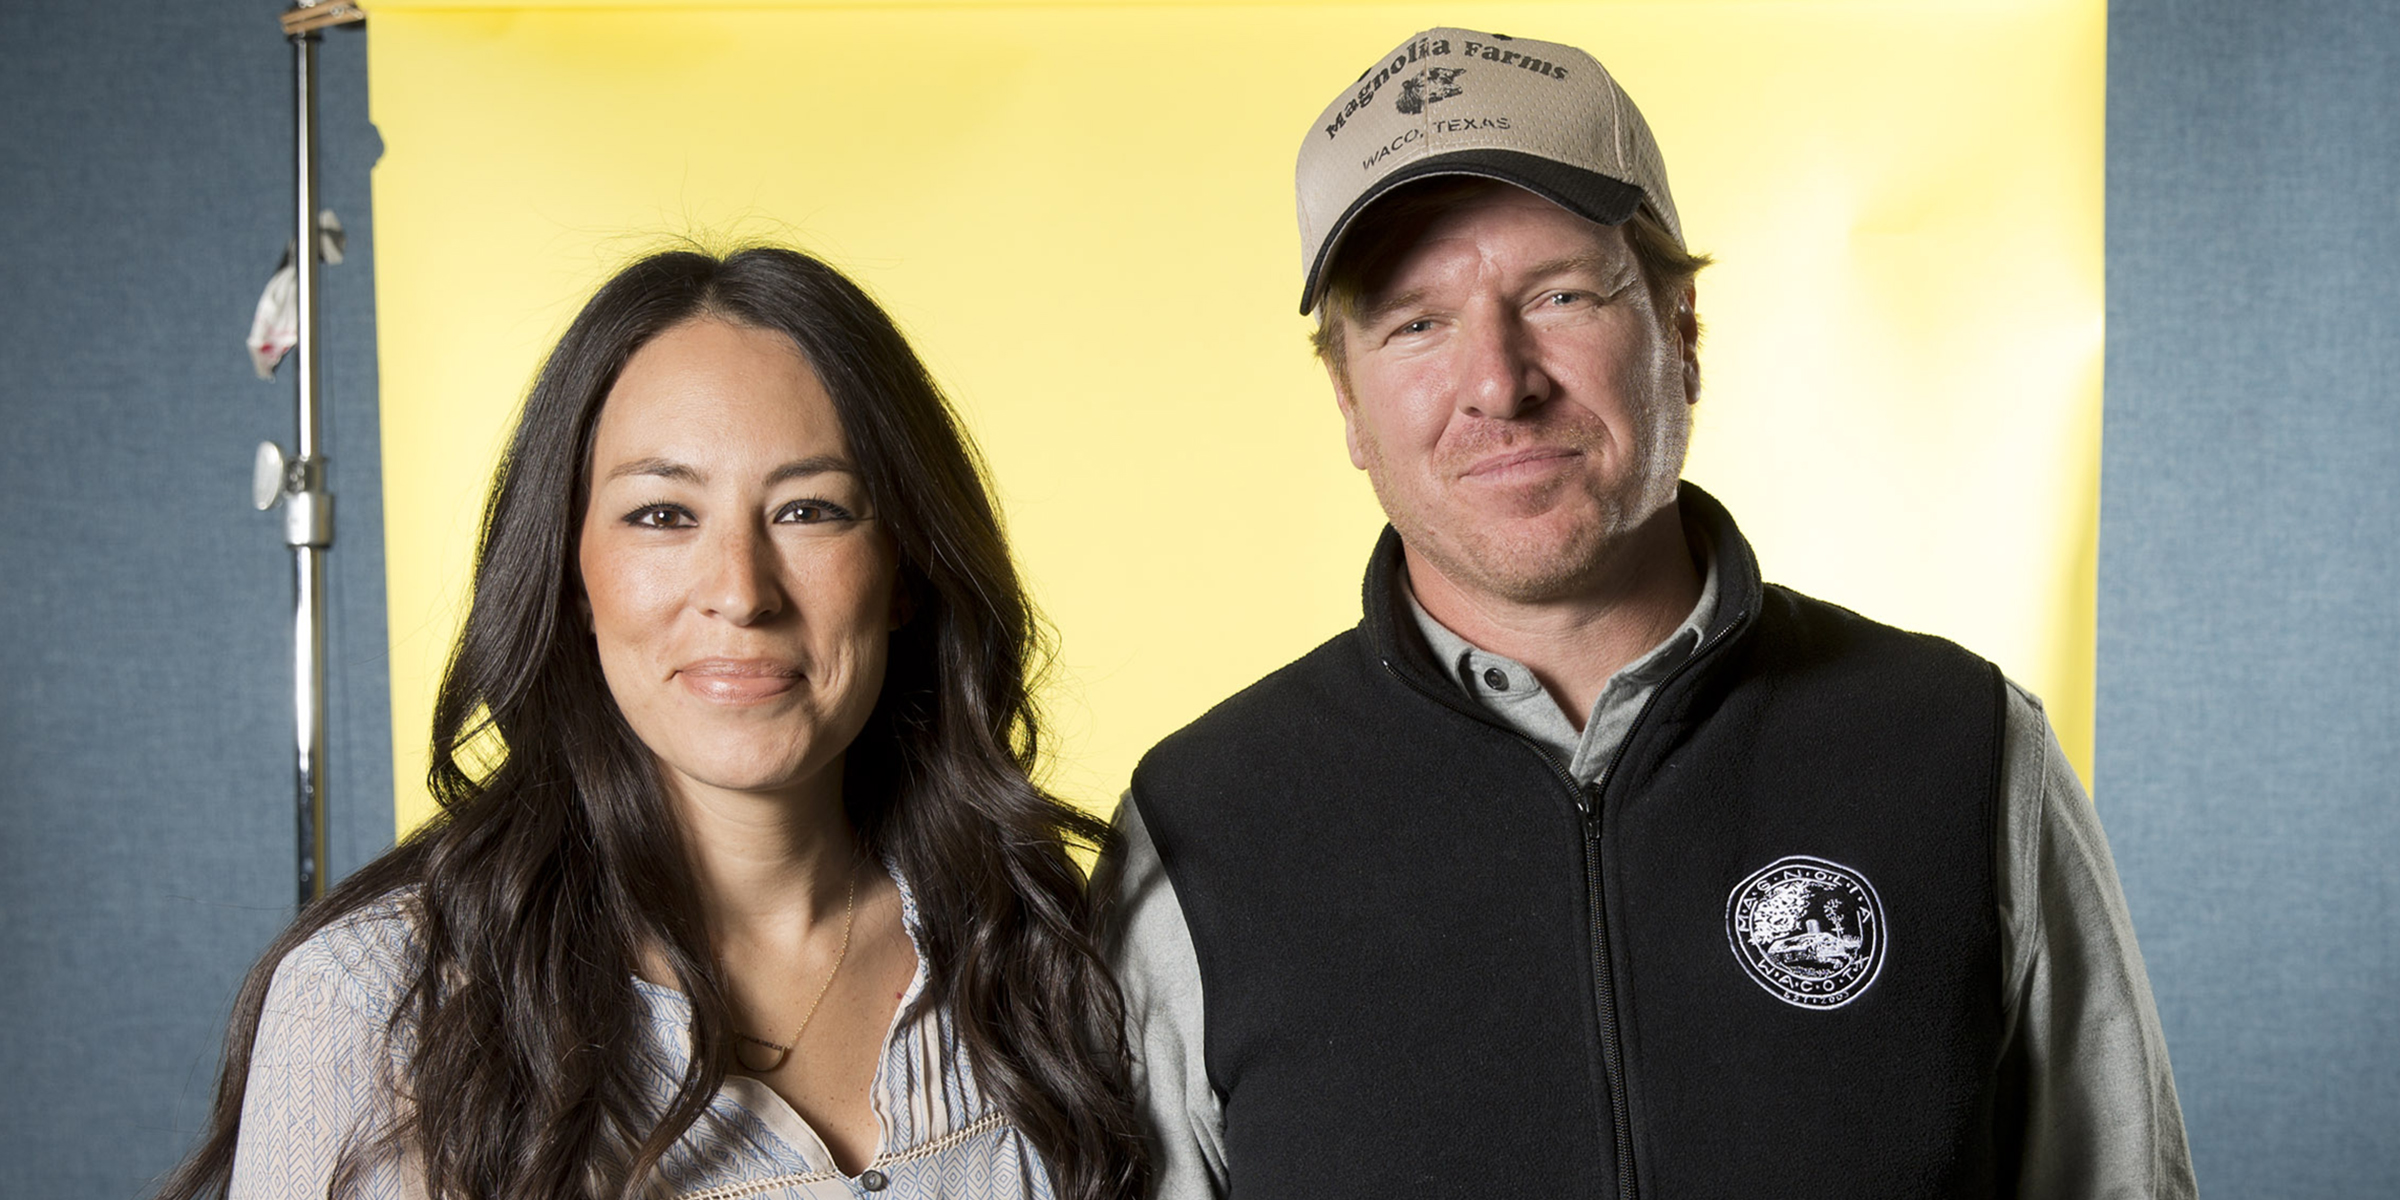 joanna gaines on flipboard chip and joanna gaines taylor swift chip gaines. Black Bedroom Furniture Sets. Home Design Ideas